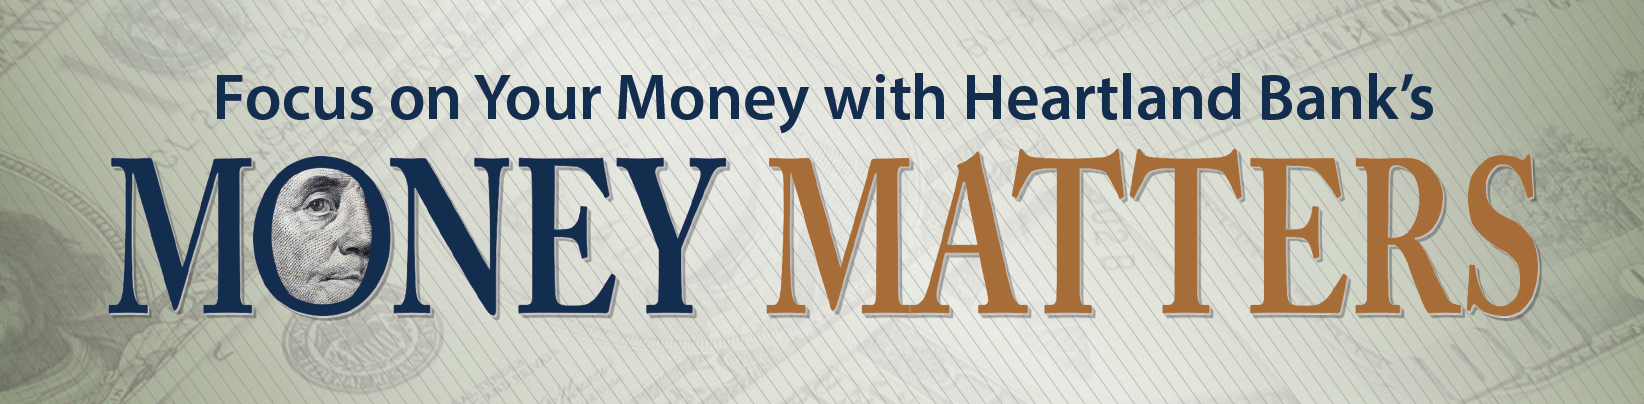 Focus on Your Money with Heartland Bank's Mini MONEY MATTERS Free Financial Summit